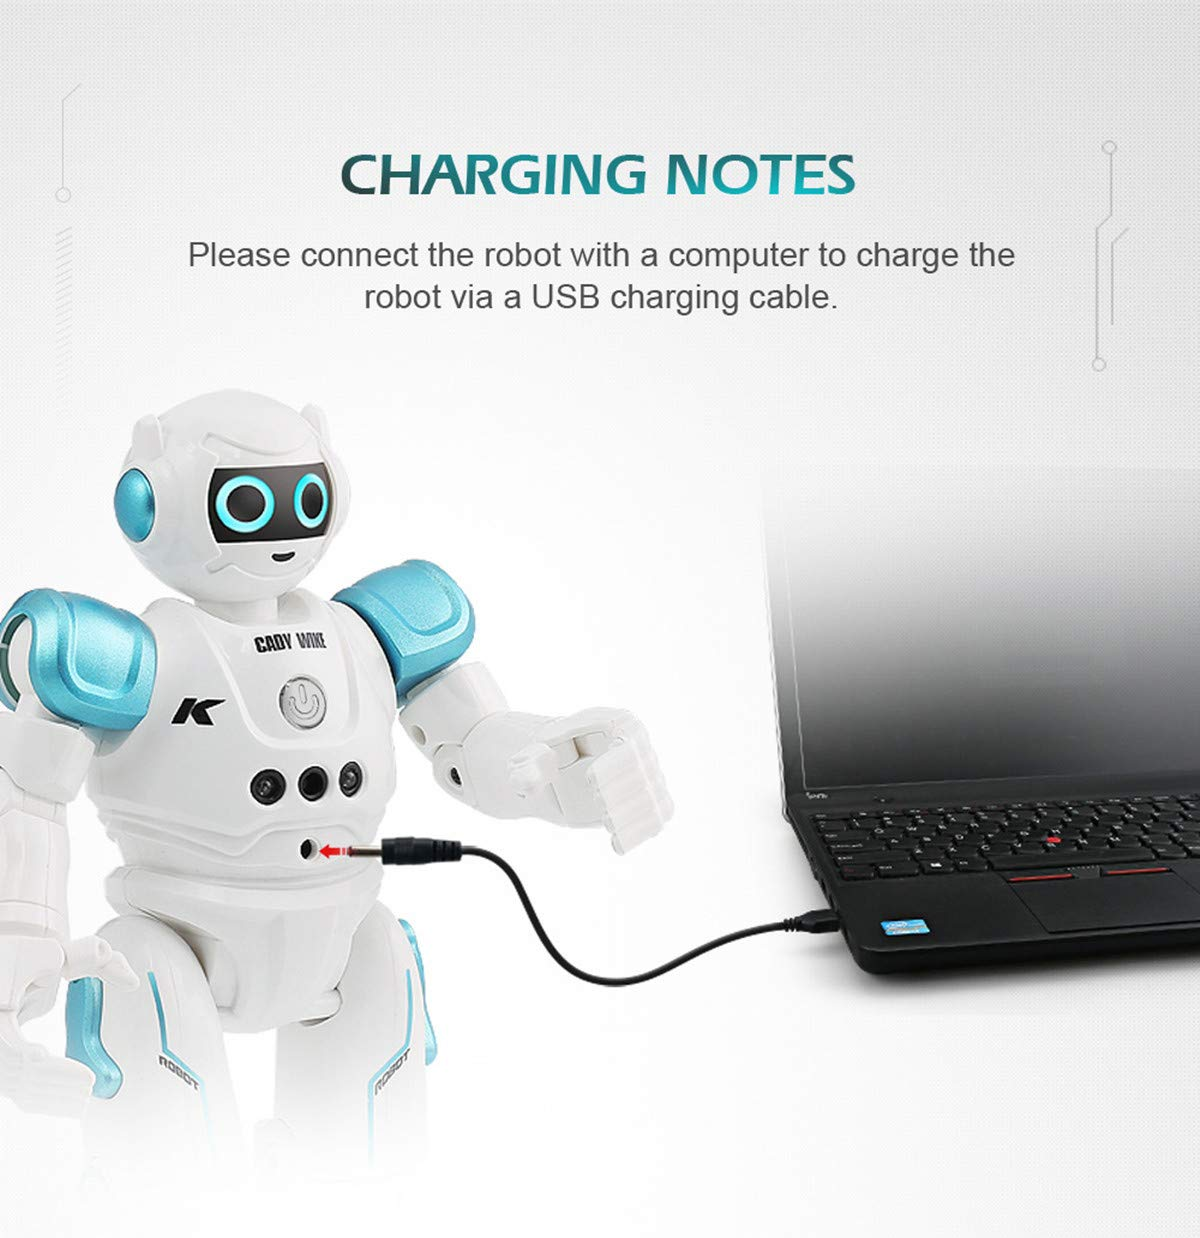 WEECOC Smart Robot Toys Gesture Control Remote Control Robot Kids Toys Birthday Can Singing Dancing Speaking Two Walking Models (Blue) by WEECOC (Image #8)